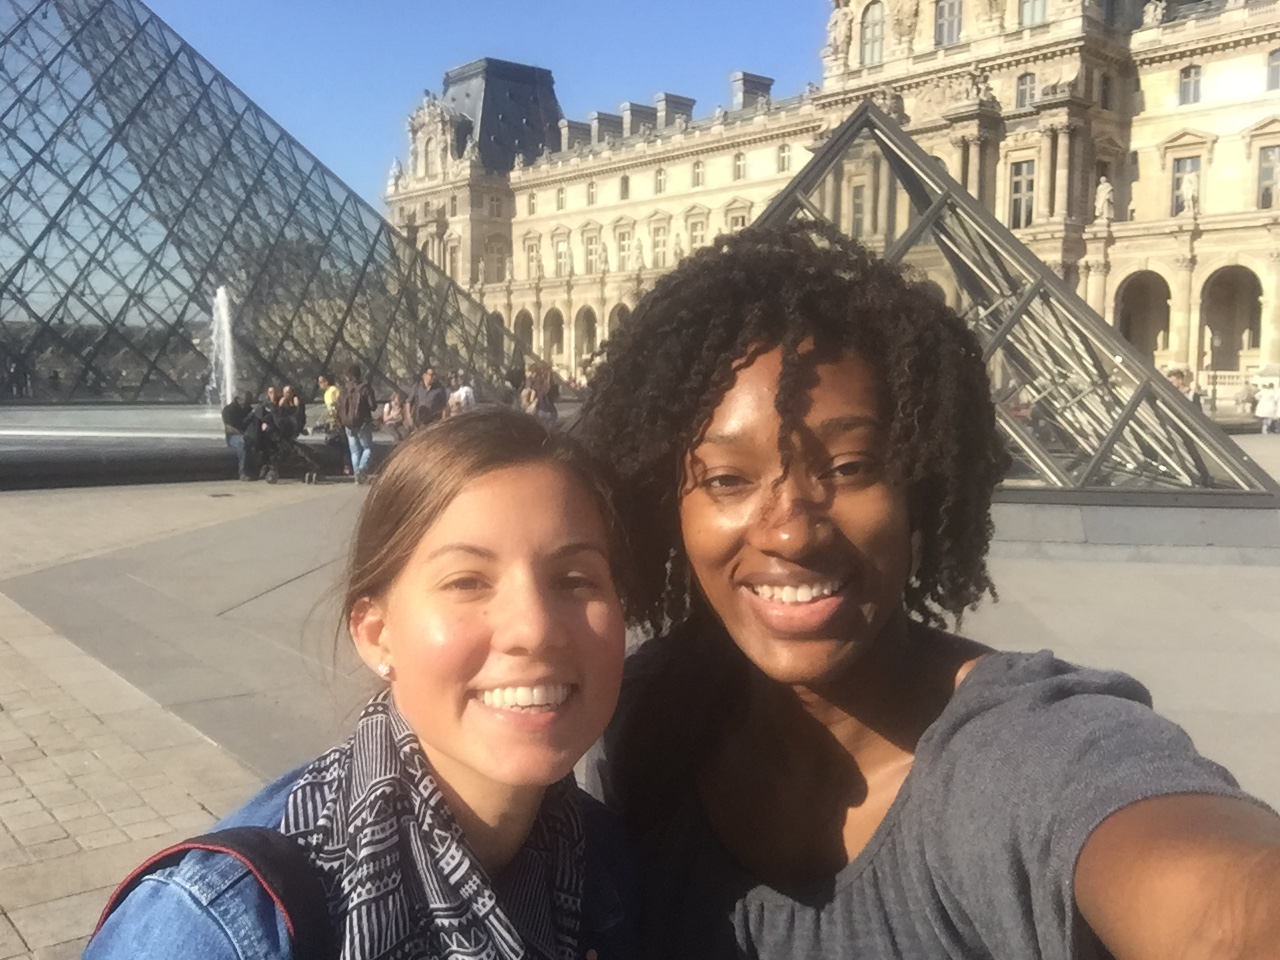 Outside the louvre with my friend from back home, Kayla!